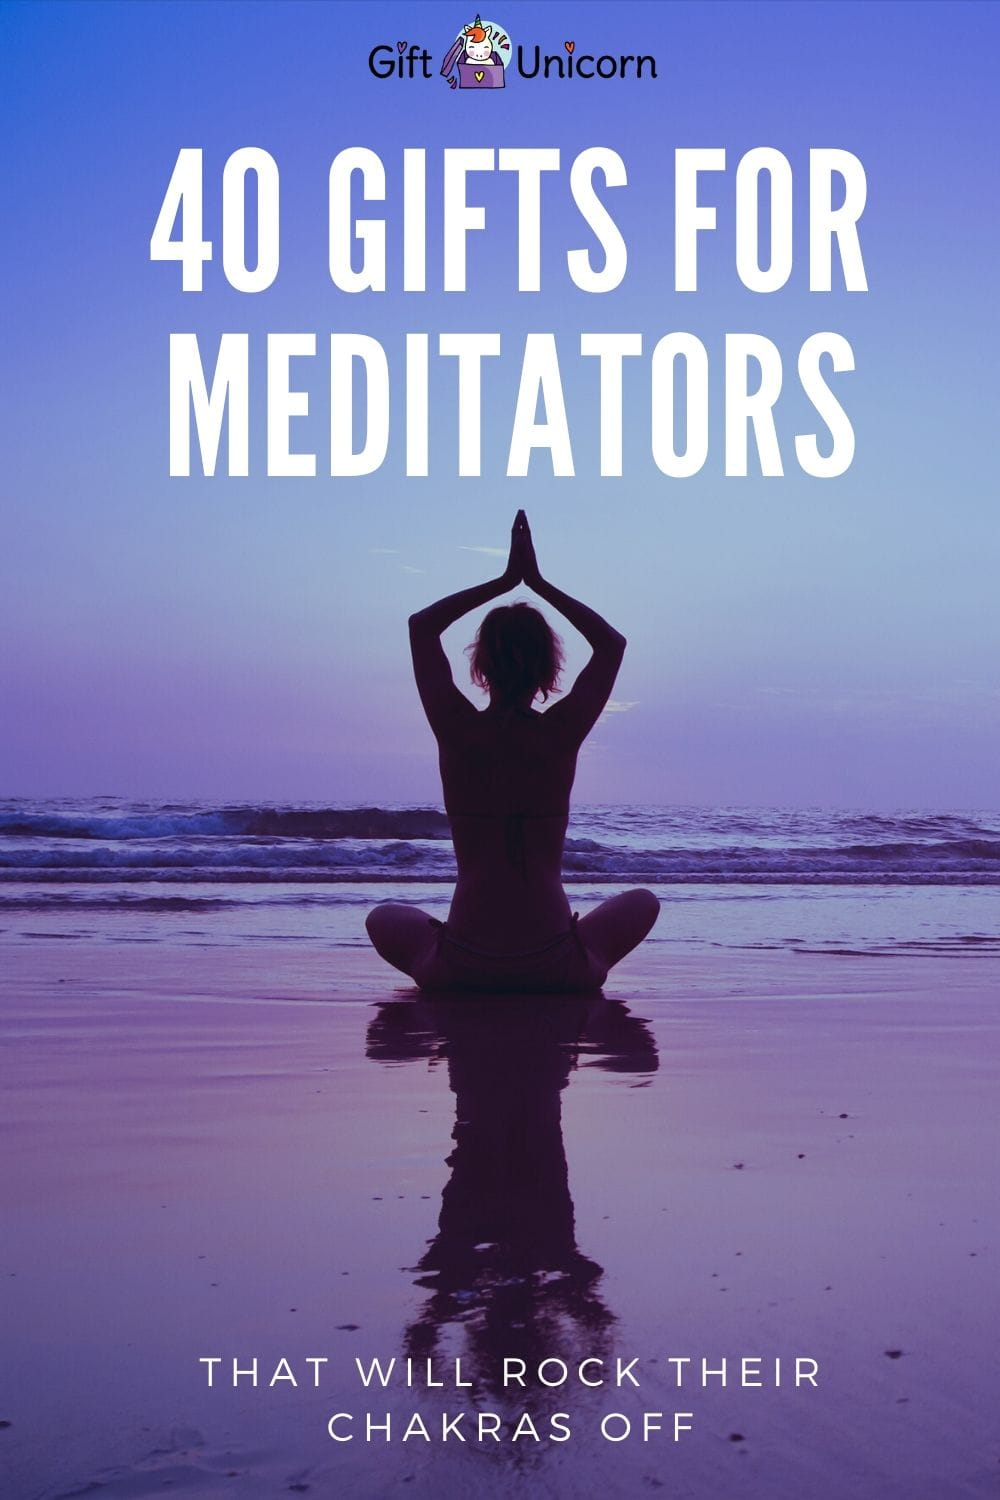 40 gifts for meditators pin image